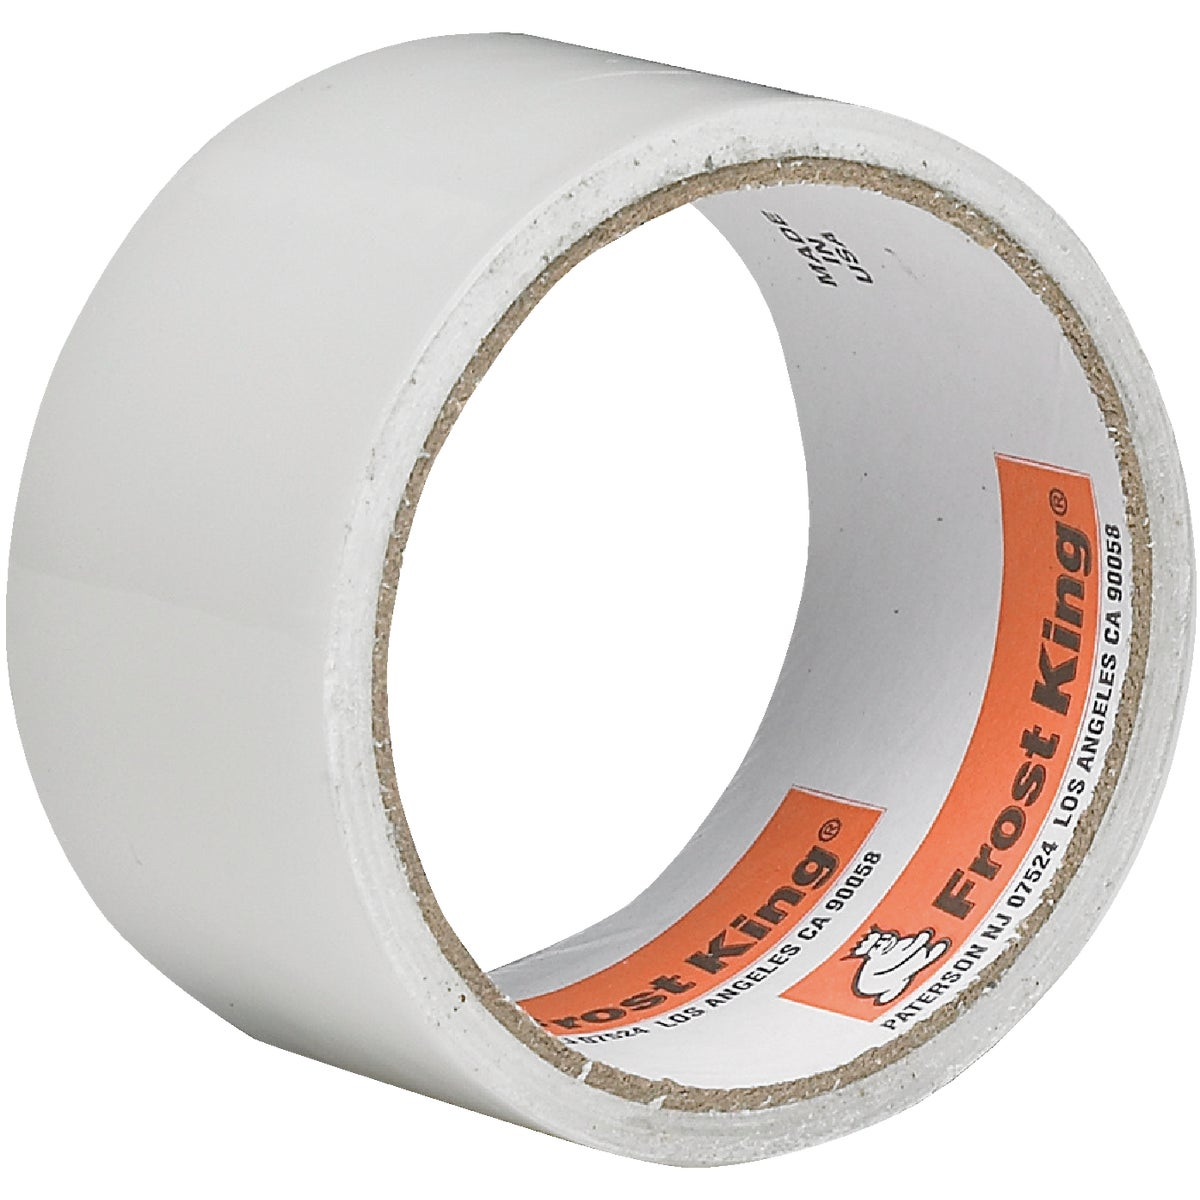 "2""X25' WEATHERSEAL TAPE - T94HDI by Thermwell Prods Co"